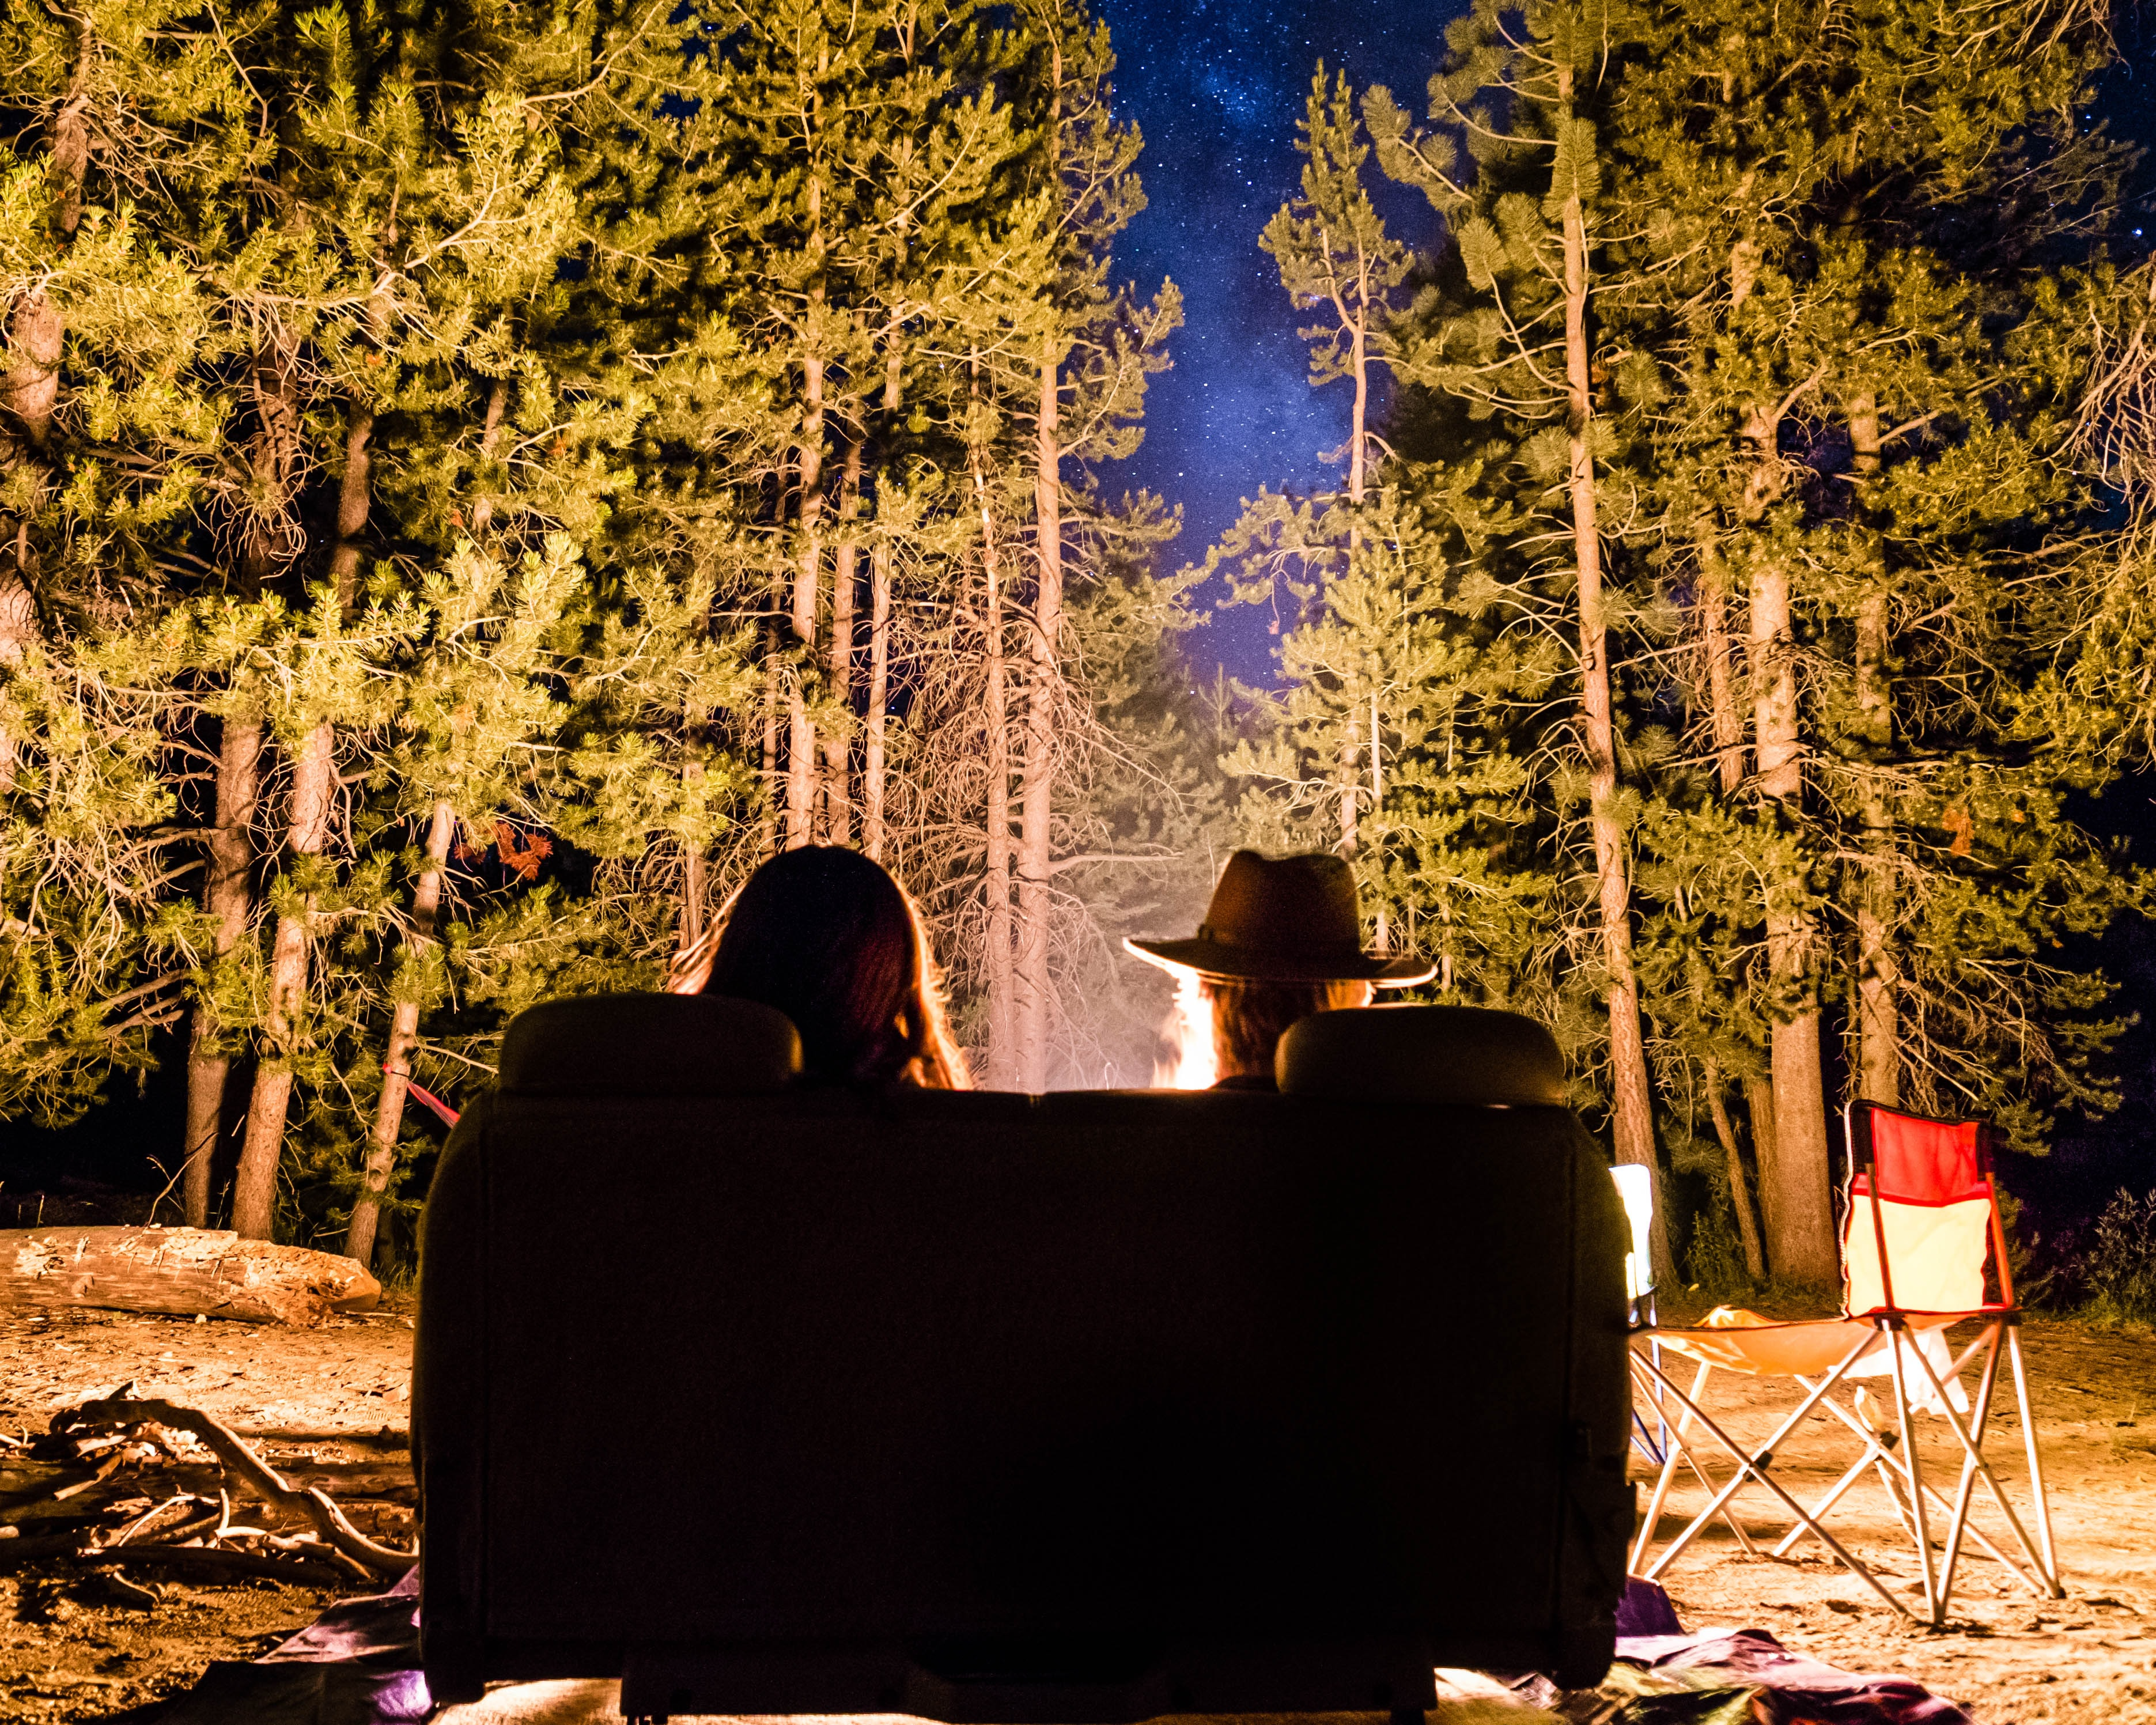 Two people seated in a sofa near a campfire in a forest at night